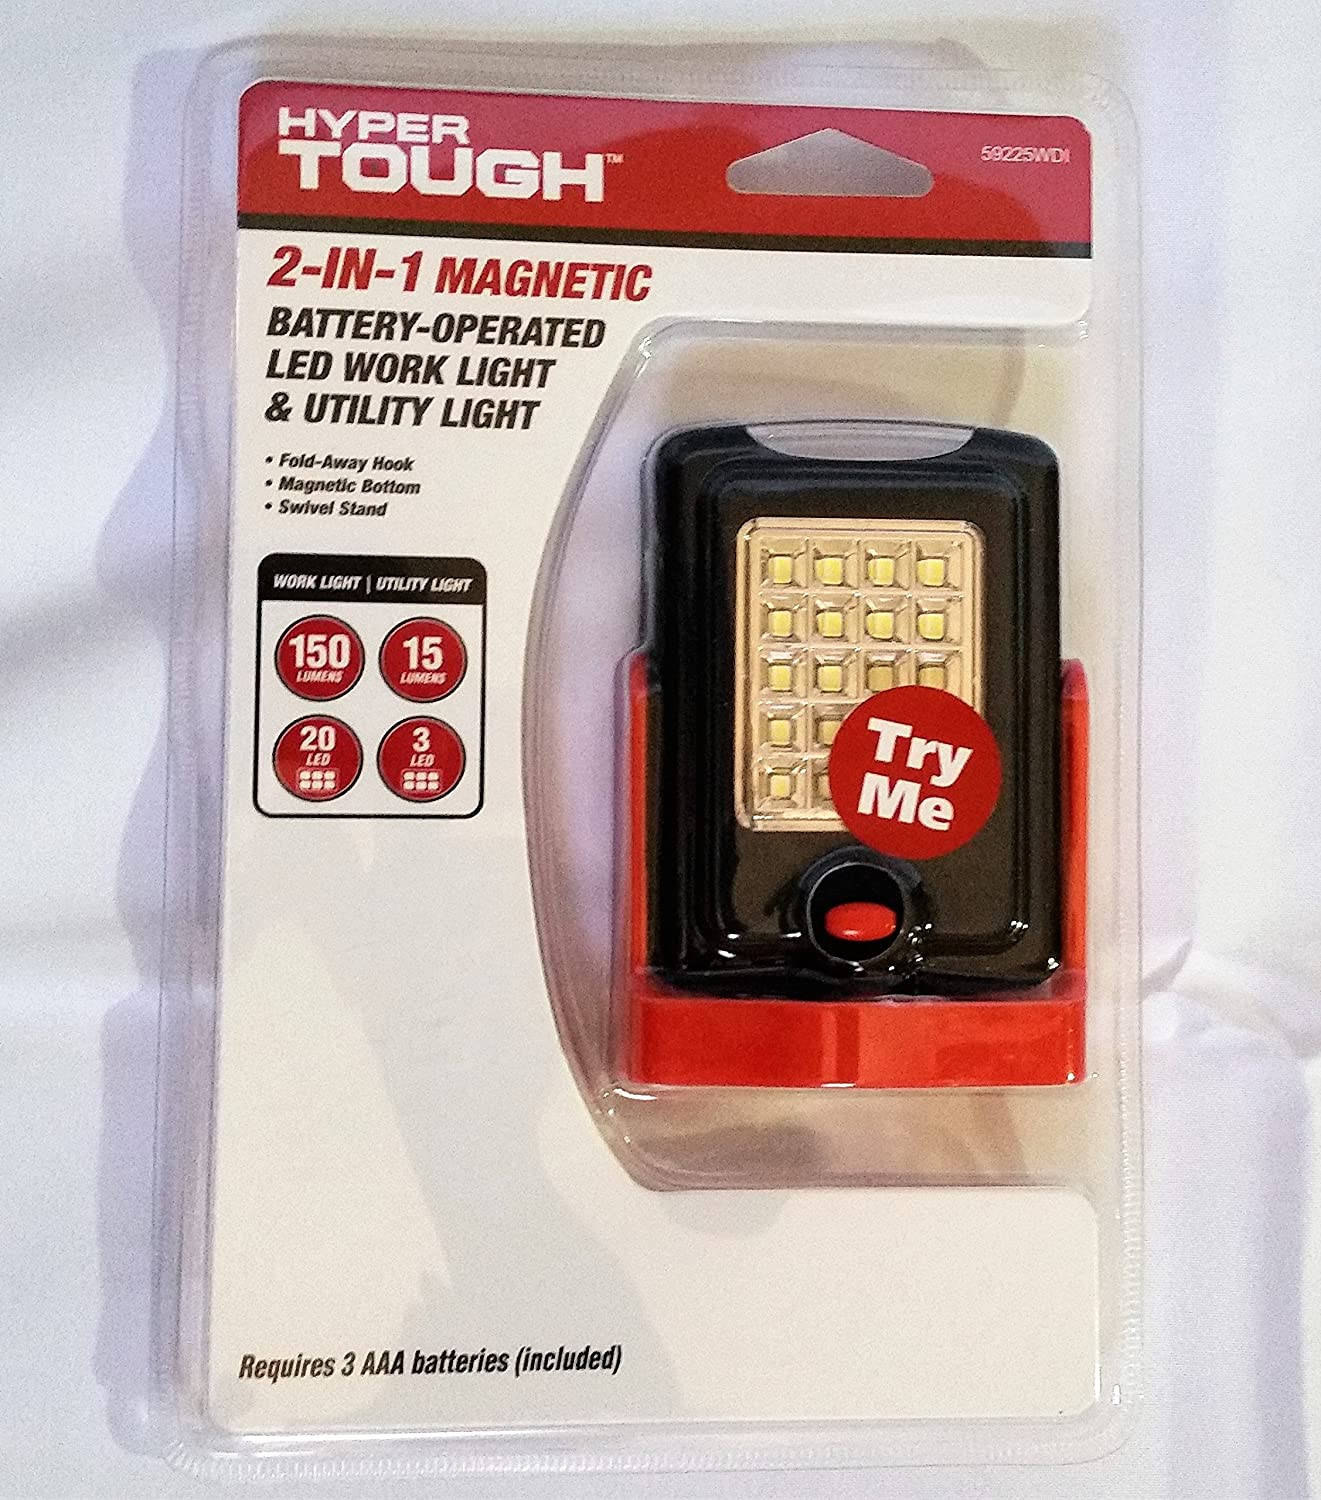 hyper tough 2 in 1 magnetic battery operated led work light